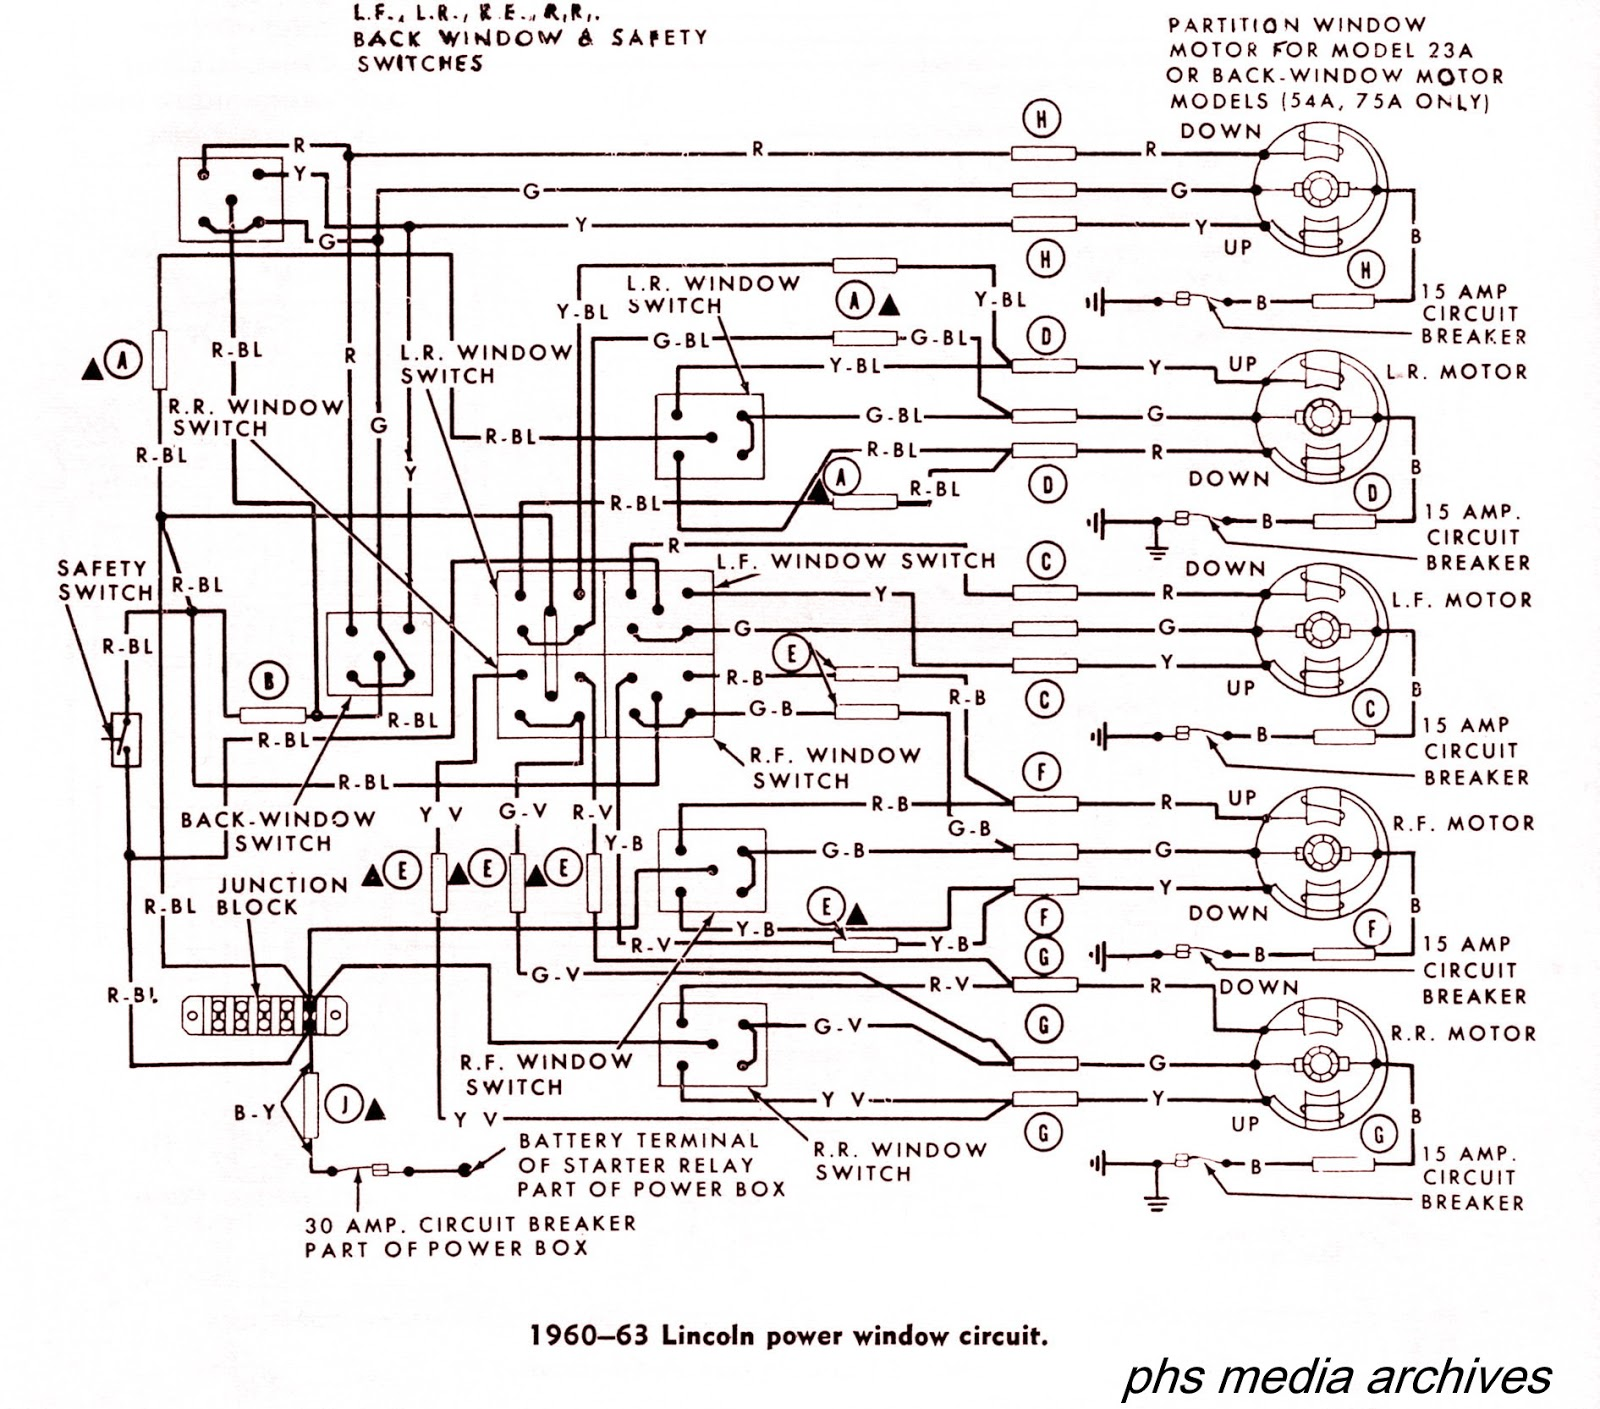 linc%2B%2Bb238 tech series 1960 1964 lincoln wiring diagrams phscollectorcarworld lincoln auto greaser wiring diagram at aneh.co